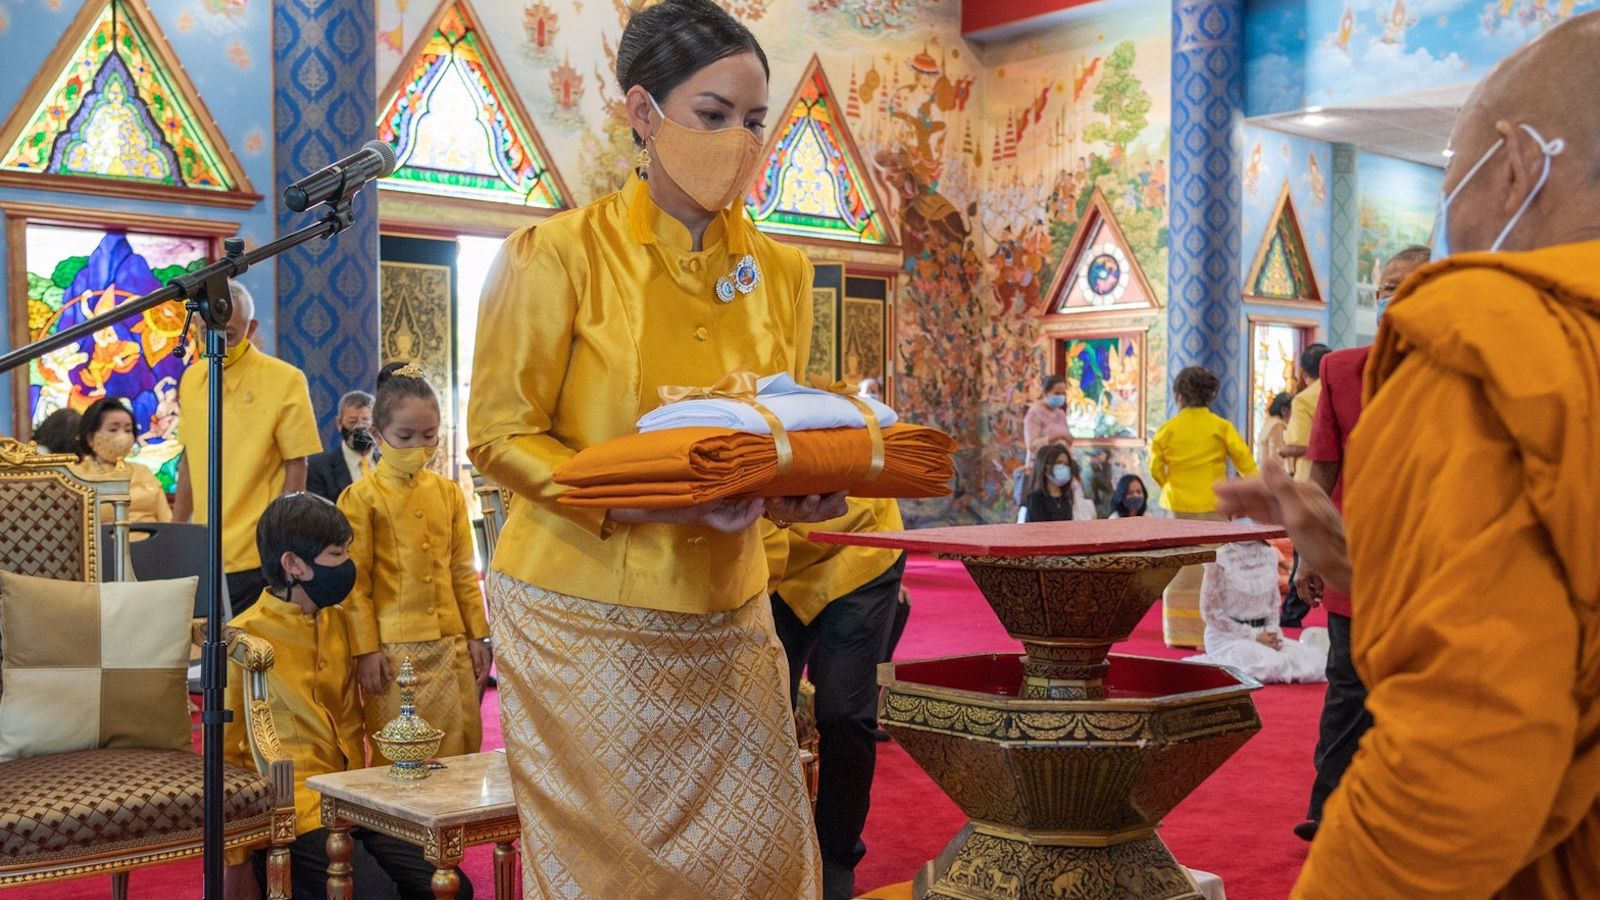 At the Royal Kathina, Nikky Phinyawatana presents a robe blessed in Thailand by King Rama X to The Dallas Buddhist Temple.